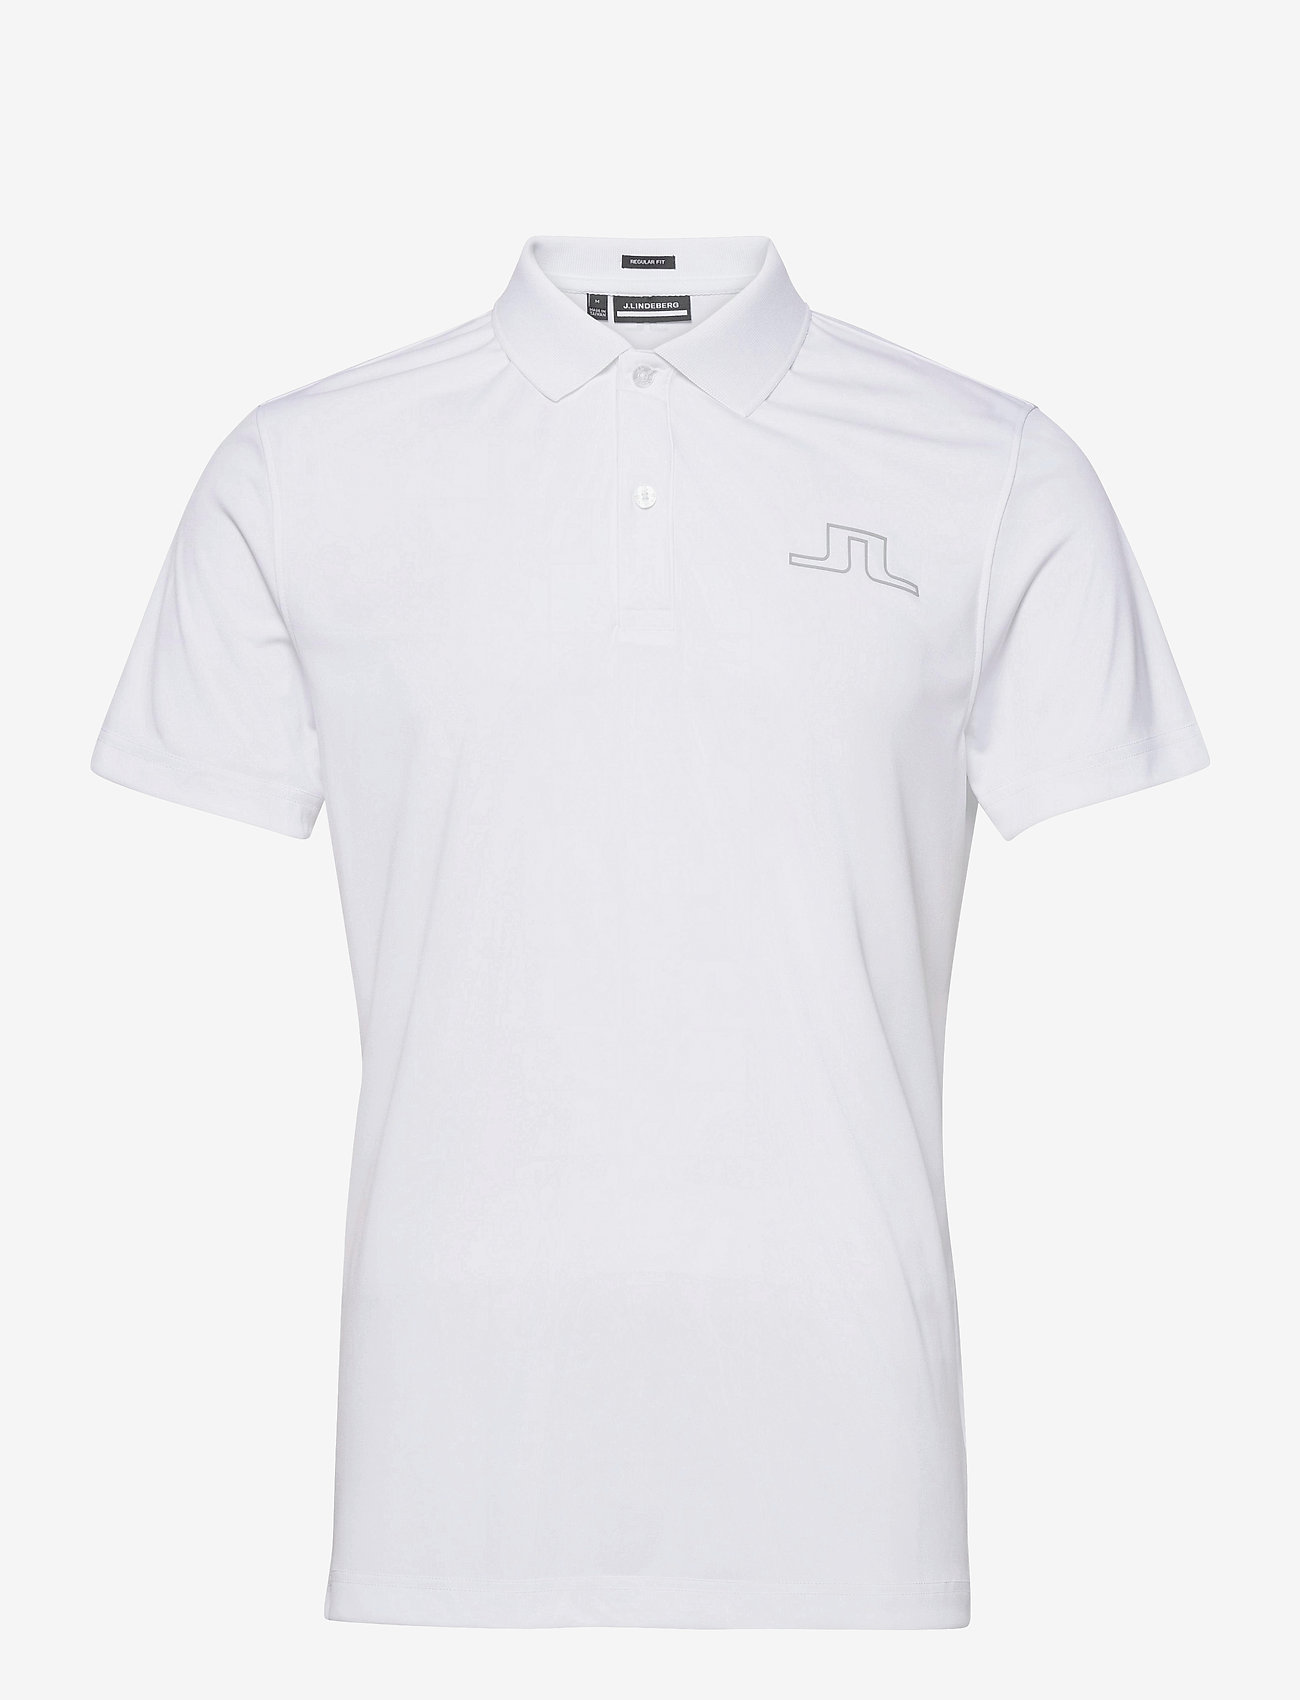 J. Lindeberg Golf - Bridge Regular Fit Golf Polo - kurzärmelig - white - 1